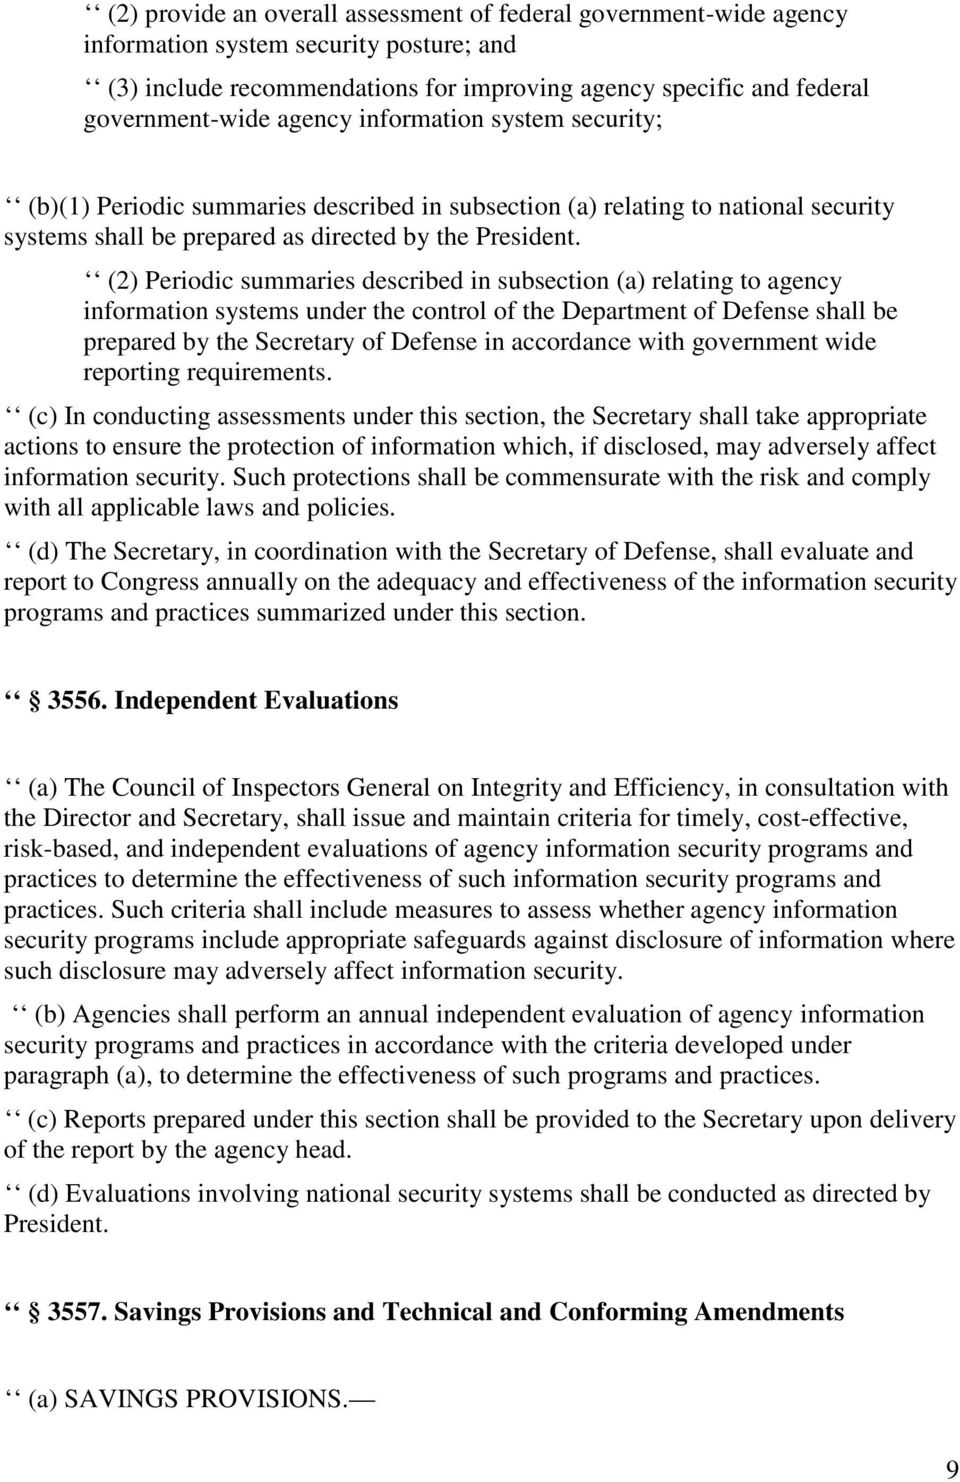 (2) Periodic summaries described in subsection (a) relating to agency information systems under the control of the Department of Defense shall be prepared by the Secretary of Defense in accordance